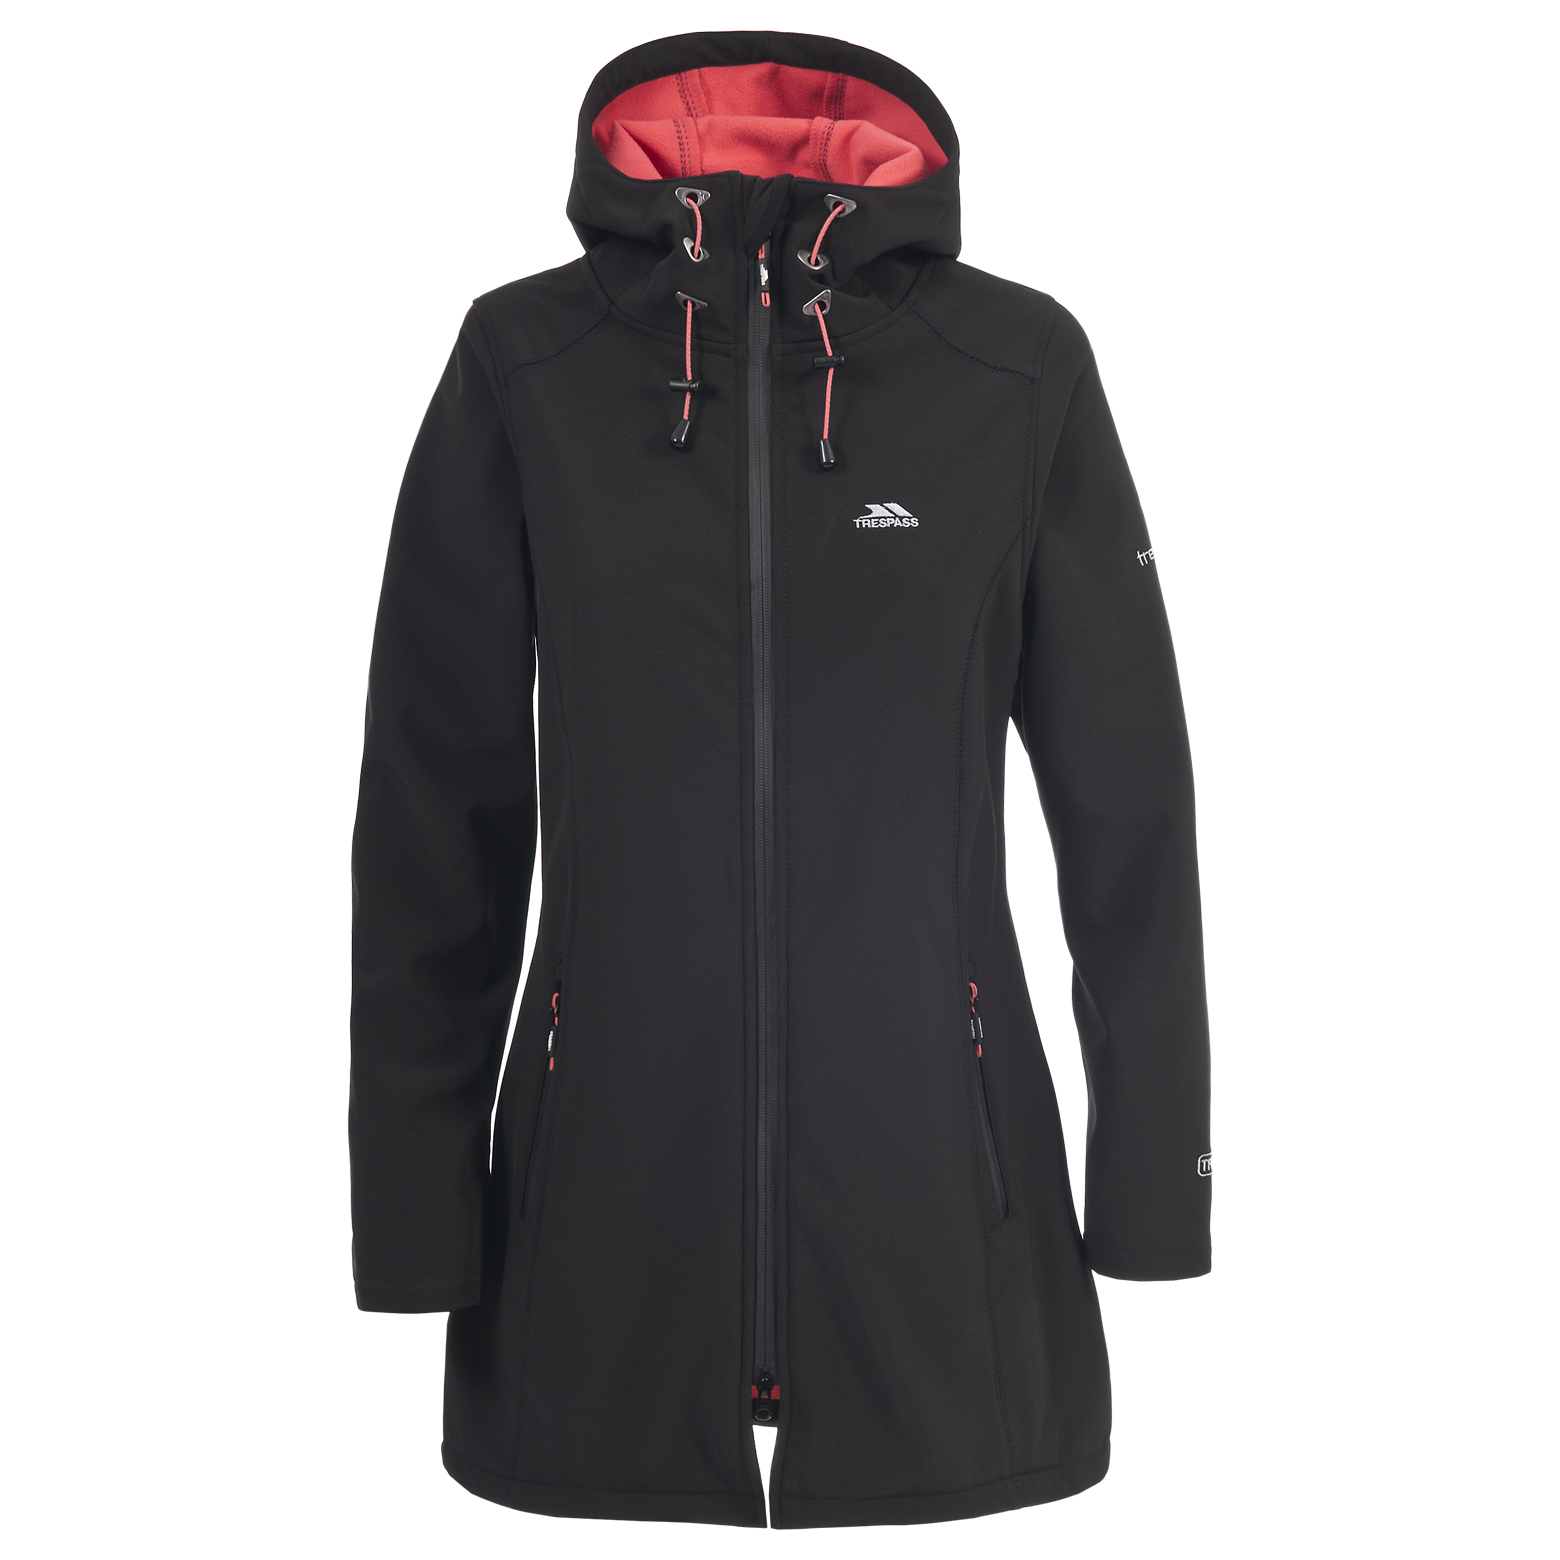 Port Authority Womens Hooded Dry Shell Waterproof Ladies Jacket Coat NEW L Brand New. $ Buy It Now +$ shipping. 11 Watching. Womens Waterproof Coat. Womens Coats. Waterproof Dog Coat. Womens Waterproof Sandals. Feedback. Leave feedback about your eBay search experience.